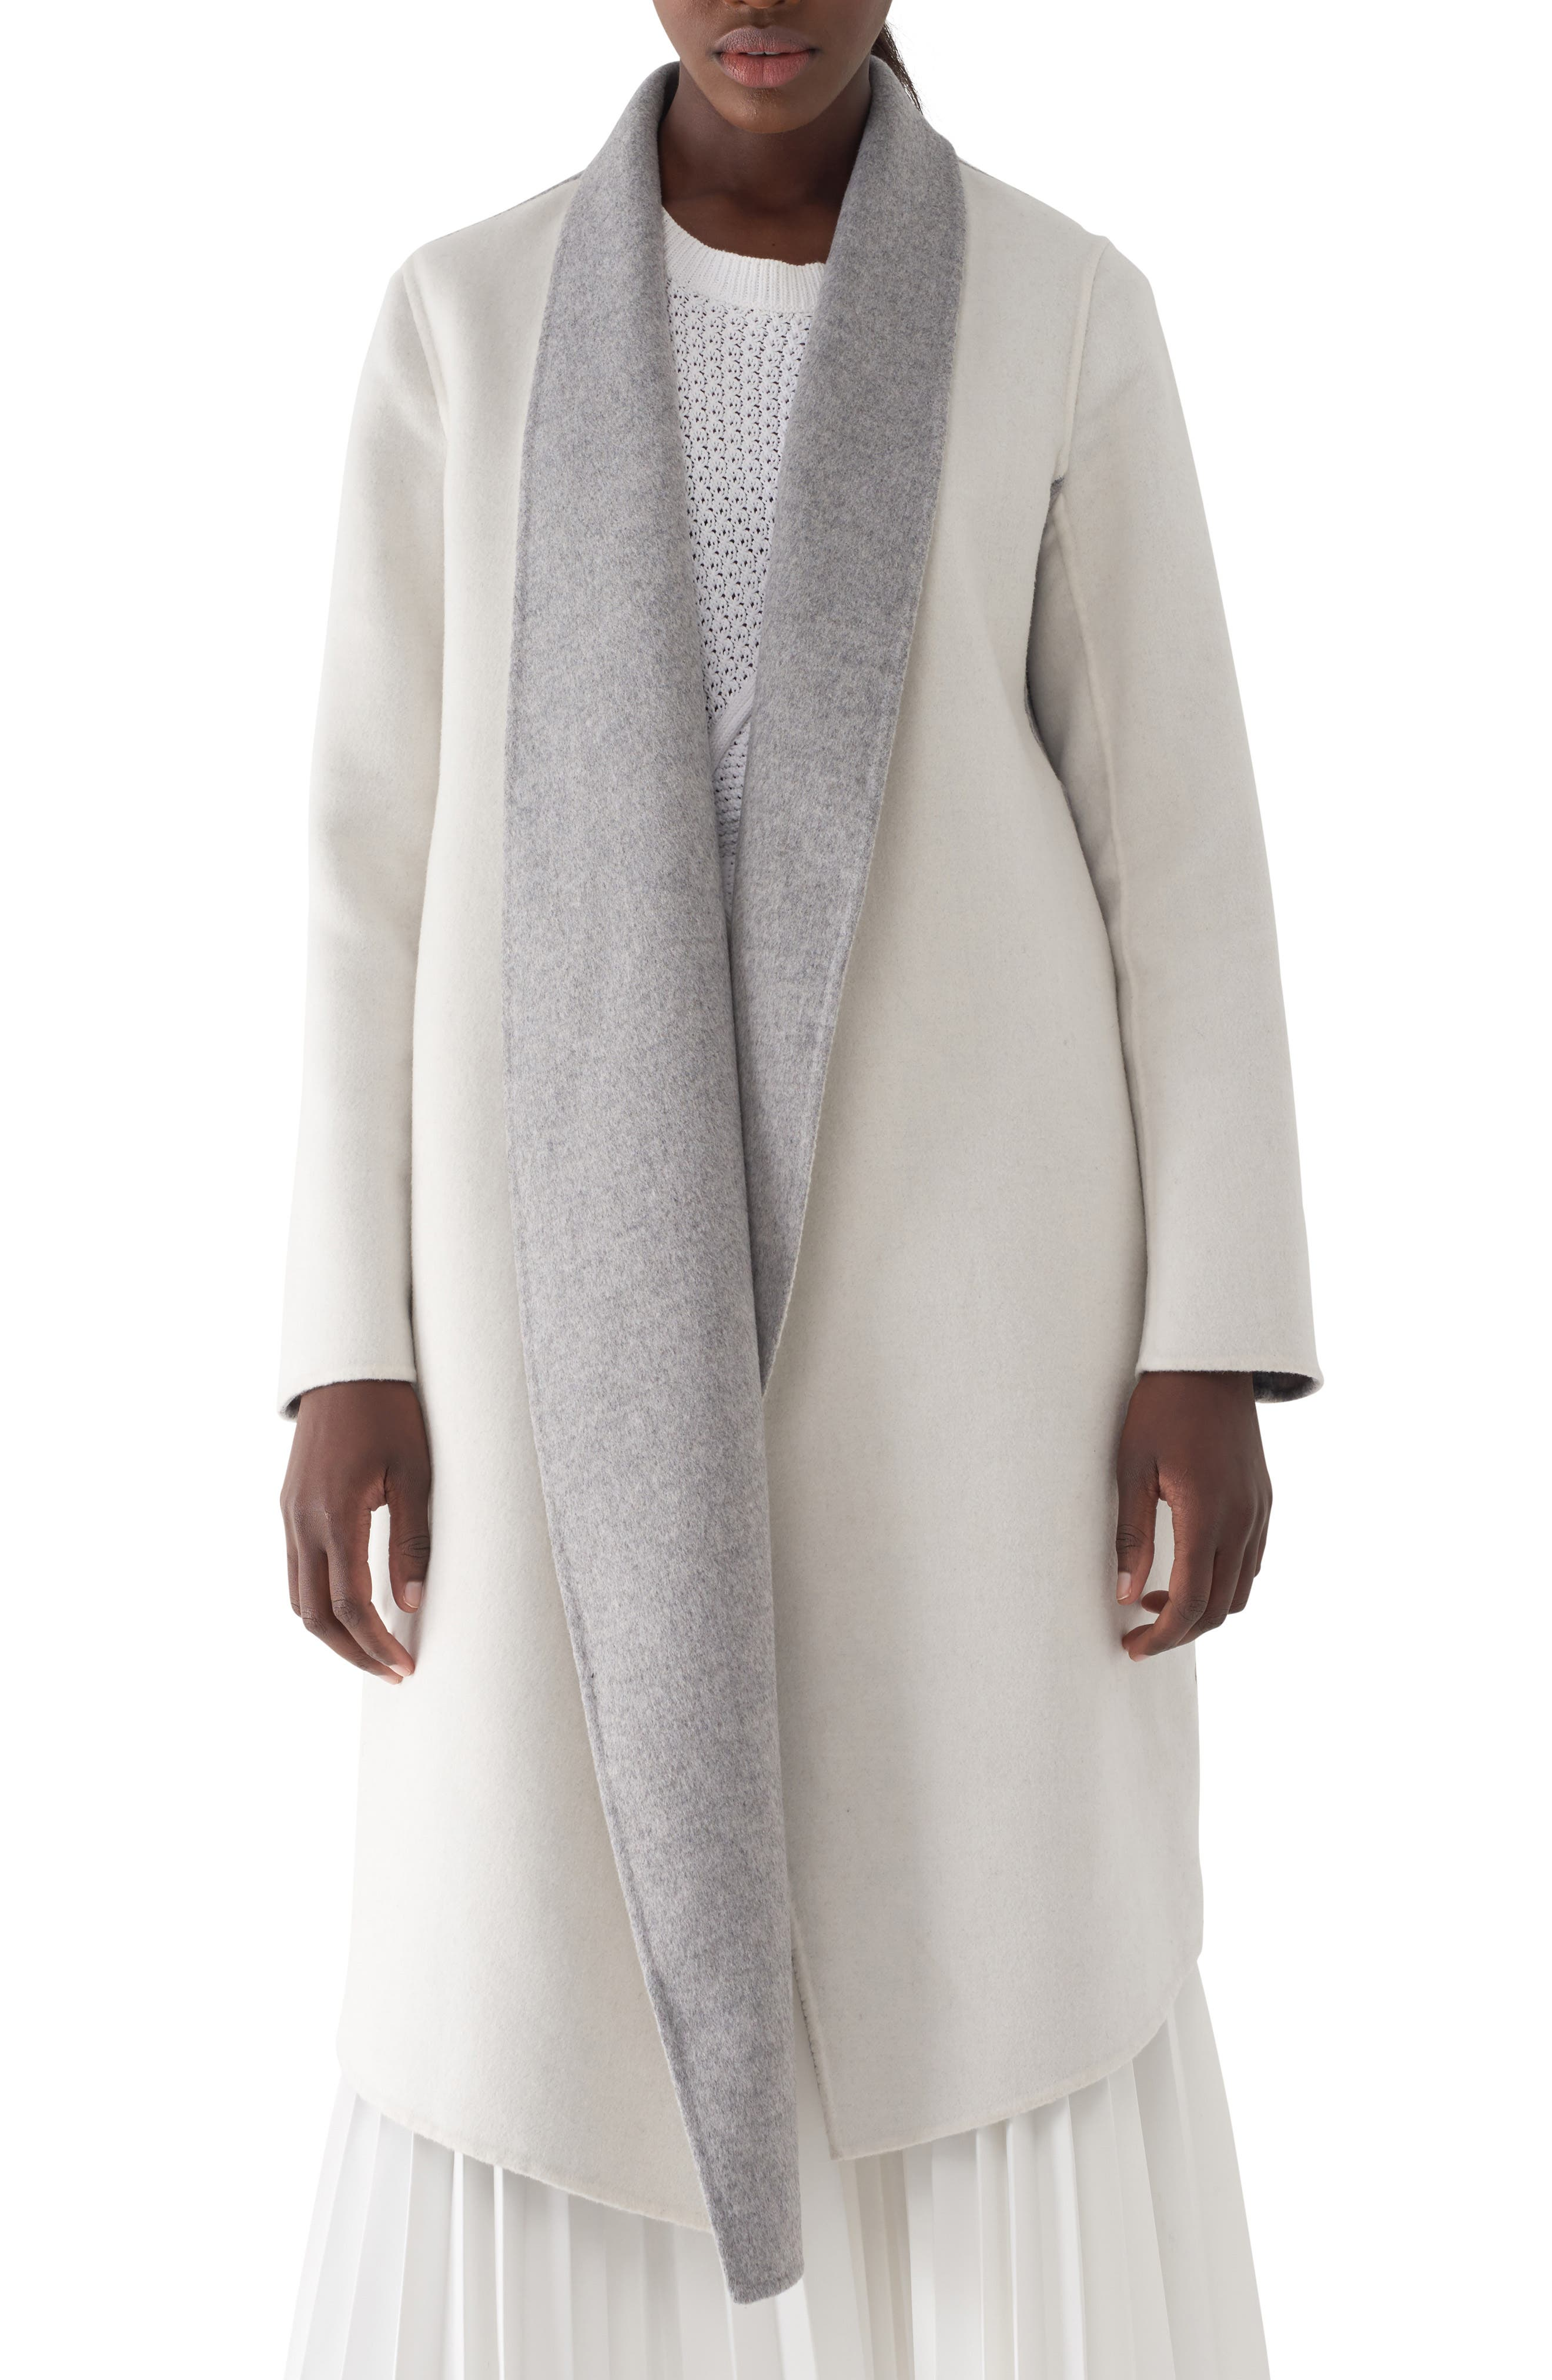 1920s Coats, Flapper Coats, 20s Jackets Womens Sosken Gloria Colorblock Double Faced Coat Size 4 - White $416.90 AT vintagedancer.com